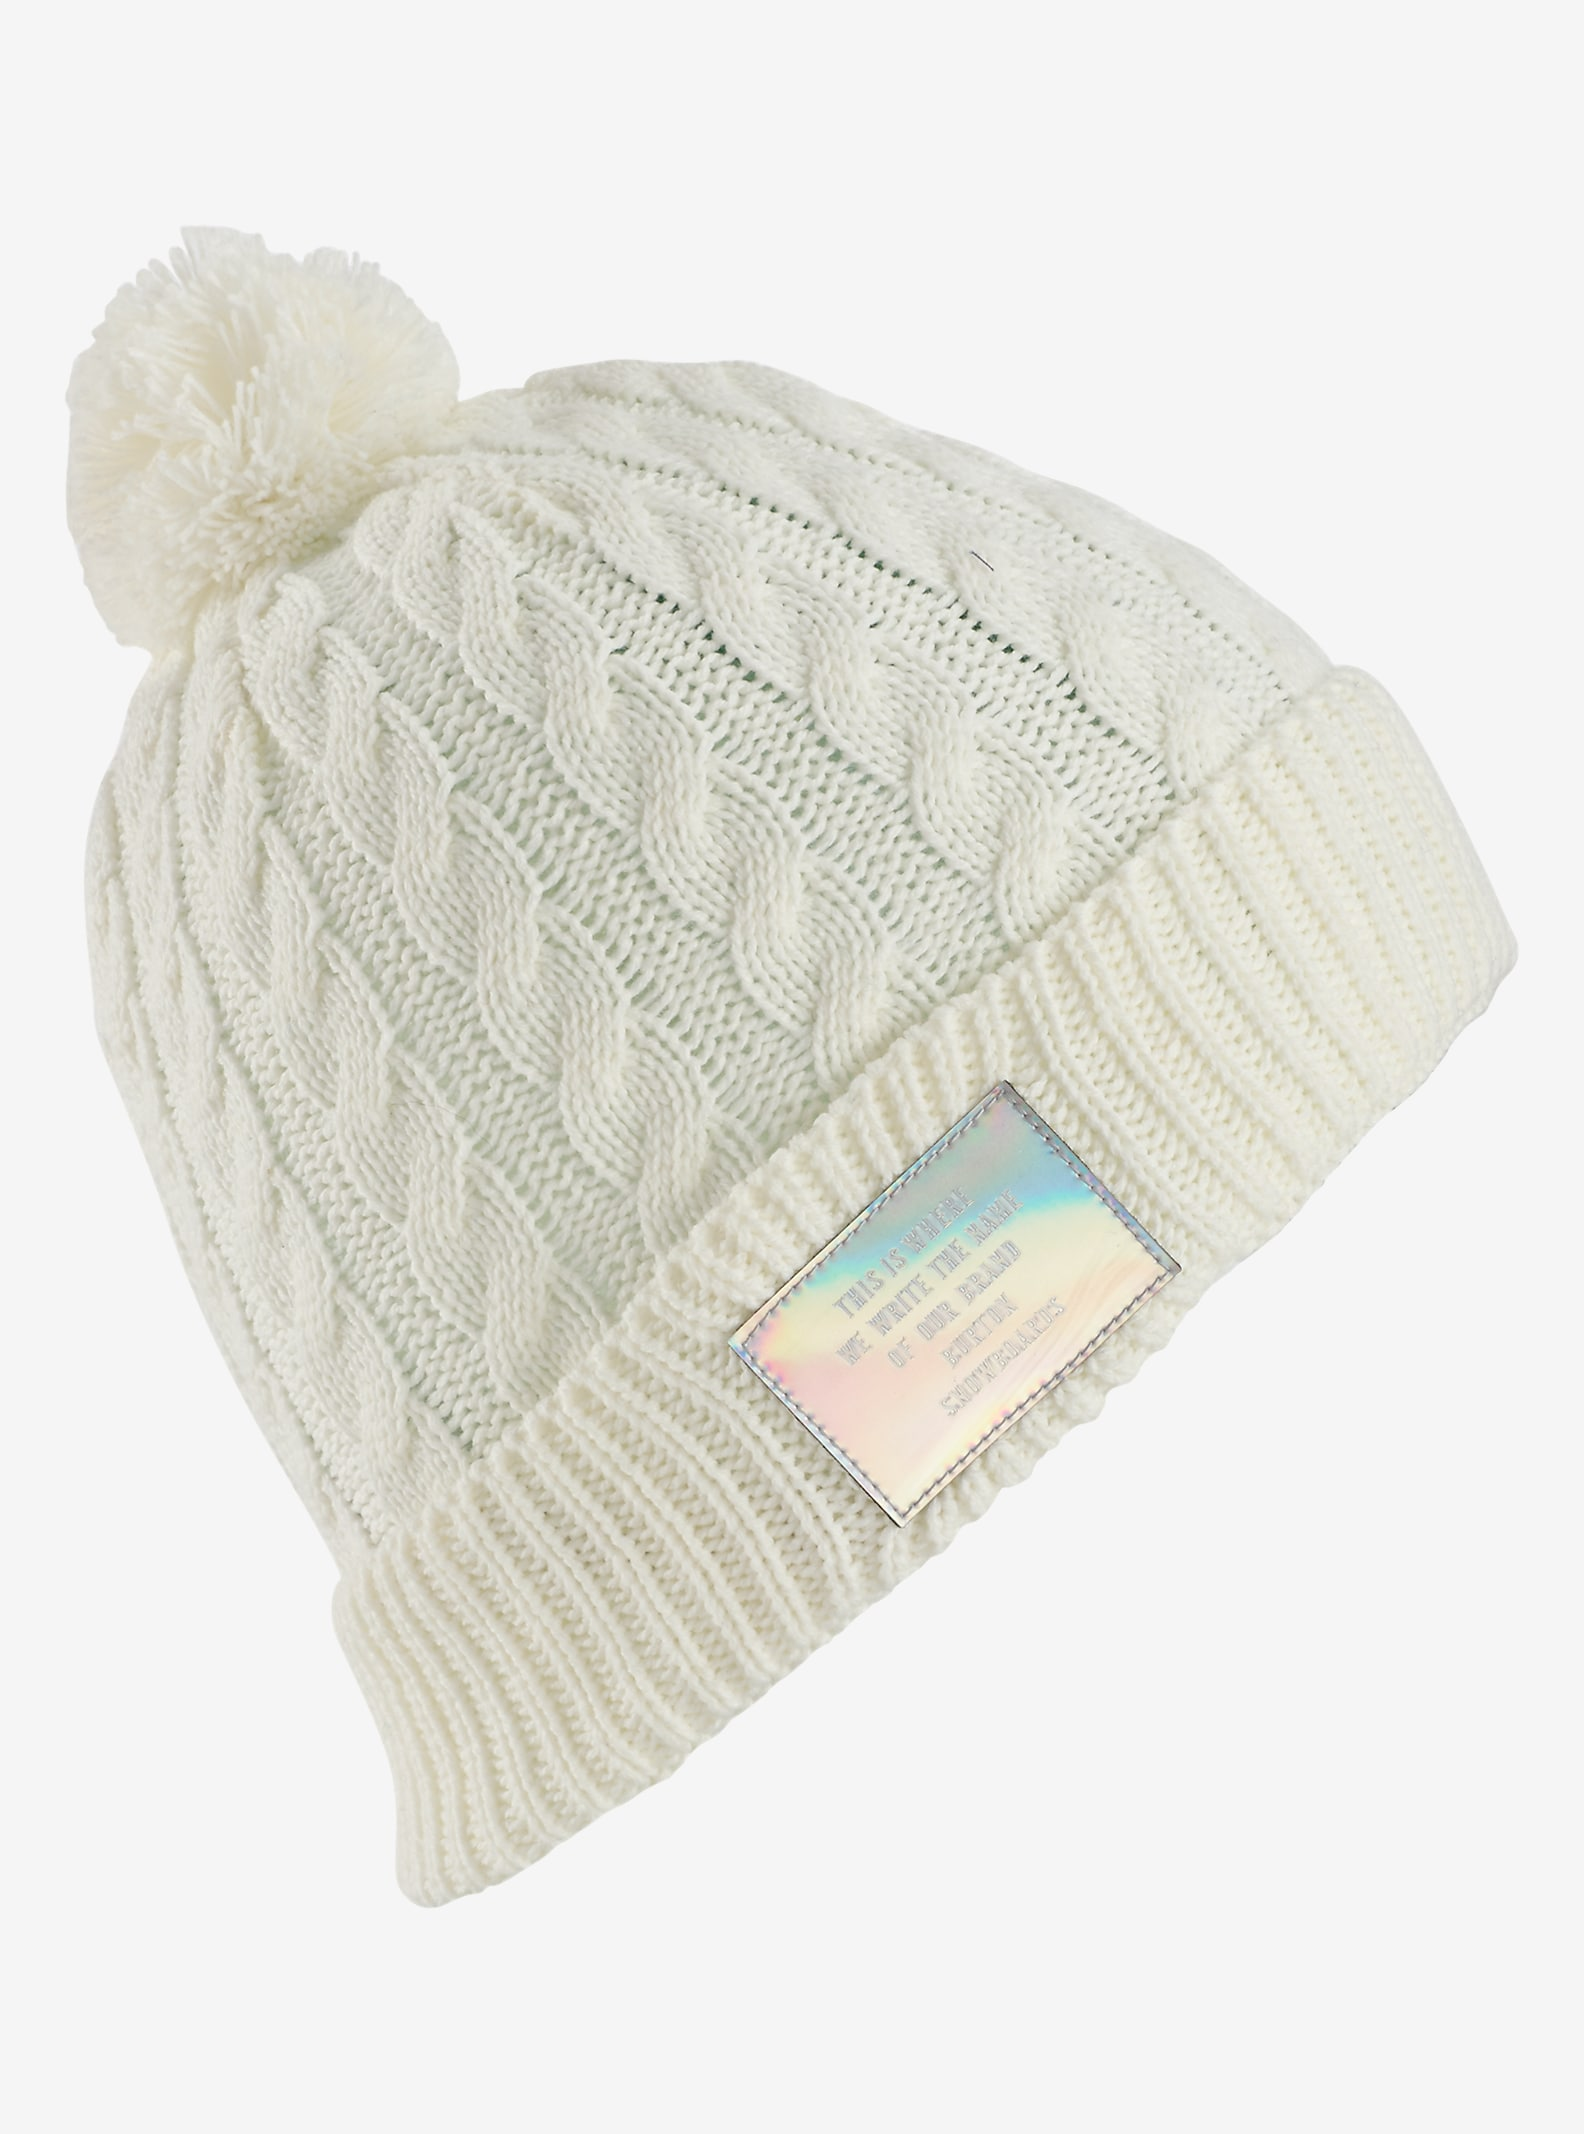 Burton Mini Cable Beanie shown in Stout White